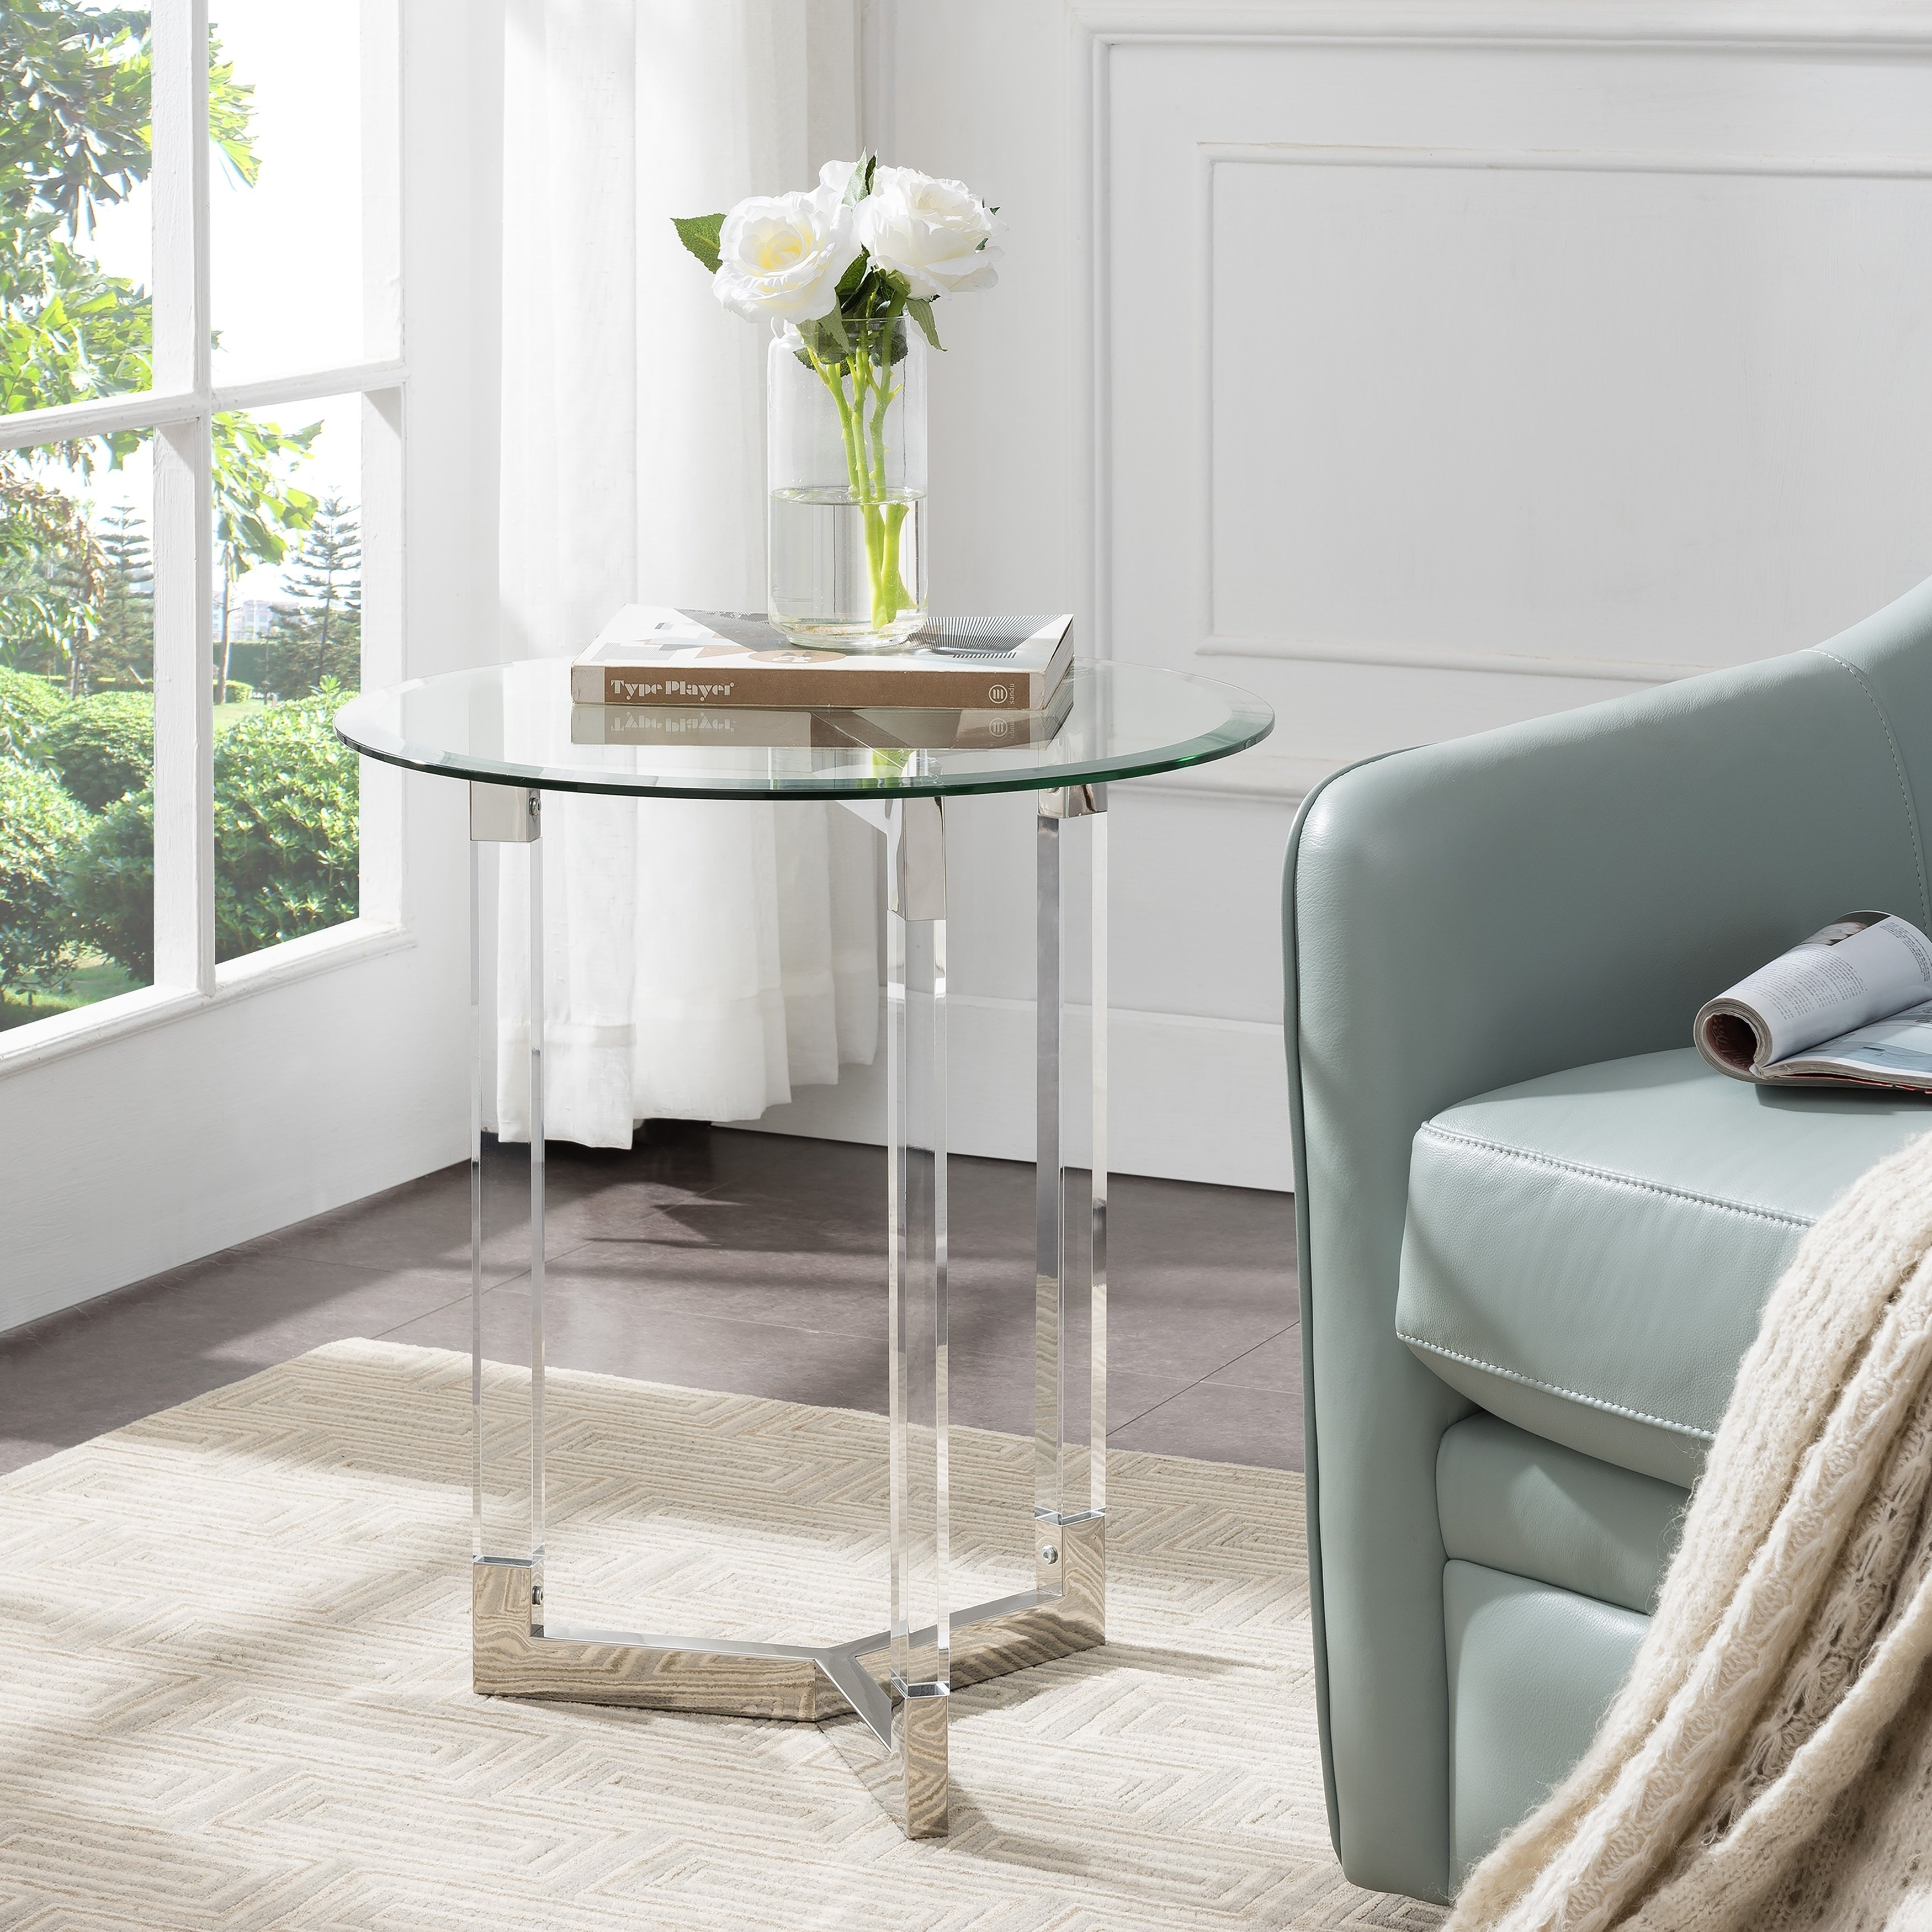 harper blvd dauphine round acrylic accent table with glass top free shipping today high stools wine rack cabinet insert marble dining slim end tables target rolling tool box